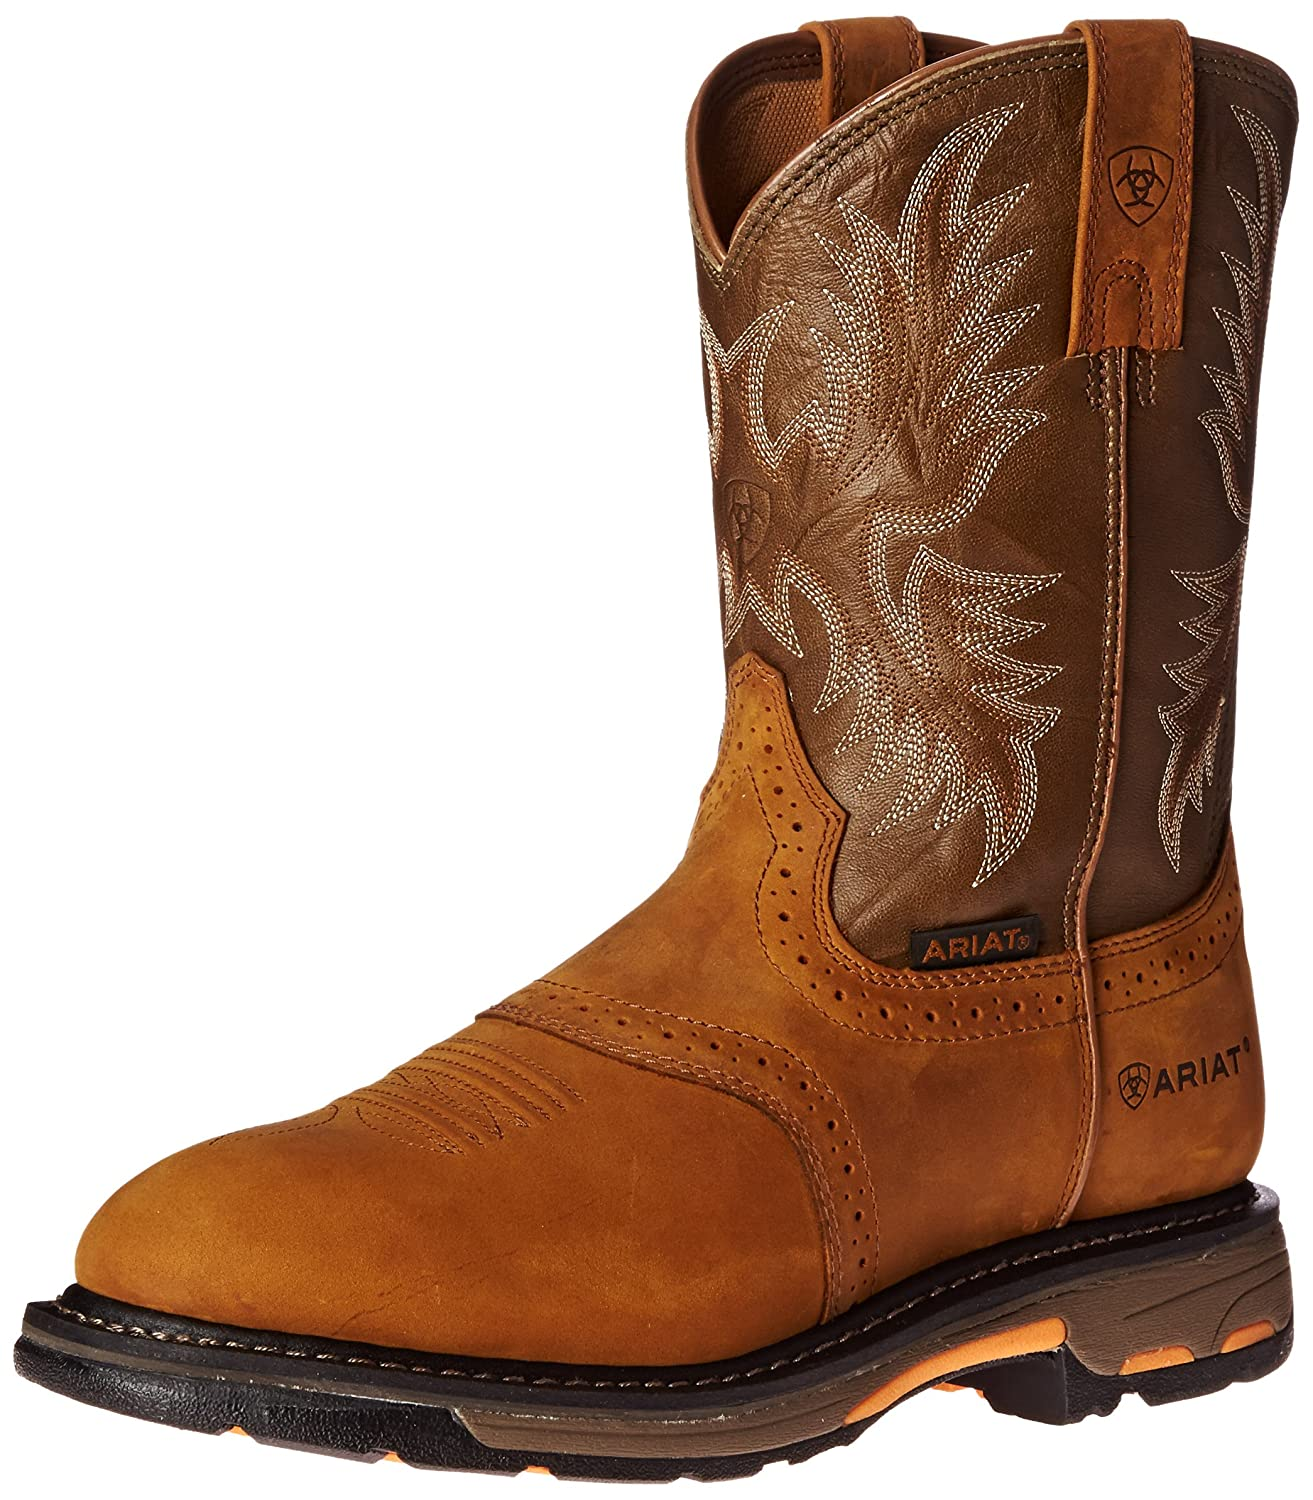 Ariat メンズ Aged Bark/Army Green 10 Narrow (B) US 10 Narrow (B) USAged Bark/Army Green B003UO9QM6